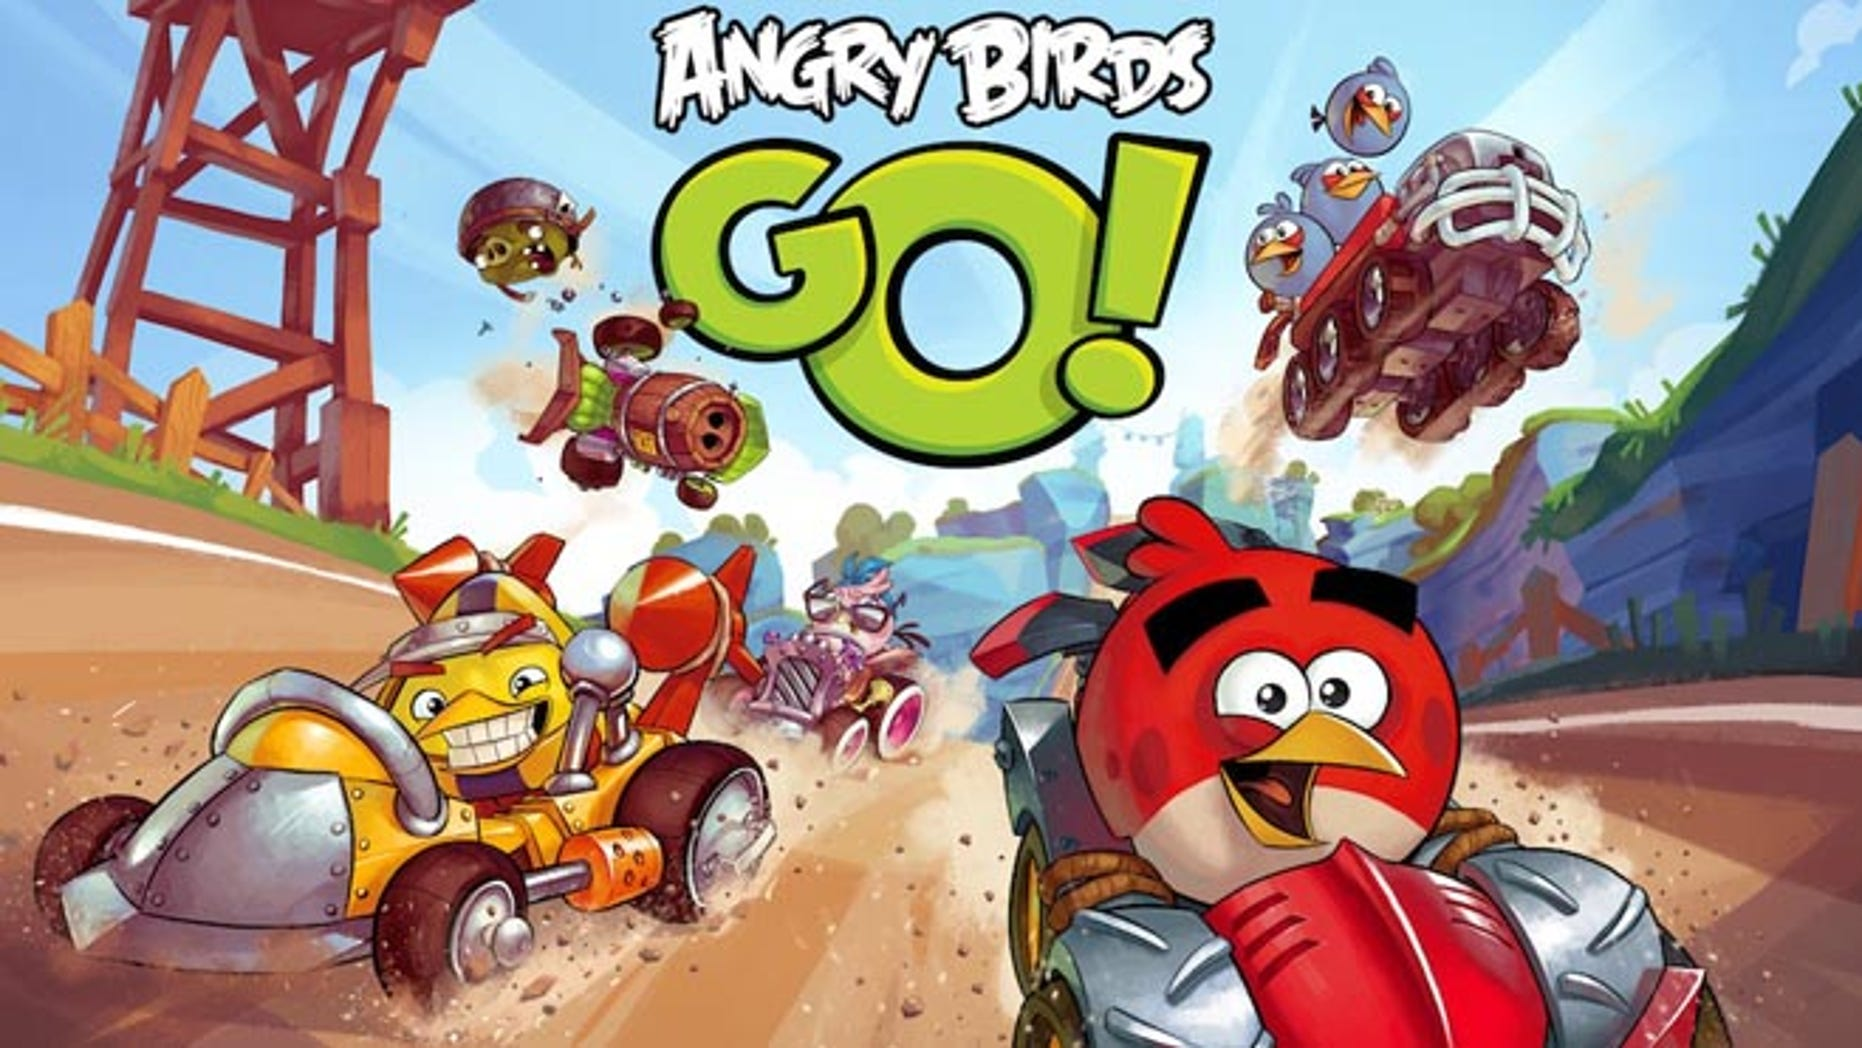 In a first for the Angry Birds series, the forthcoming Angry Birds Go! title will feature high-octane downhill racing, upgradable karts, tons of characters with unique special powers and a fully rendered 3D world.